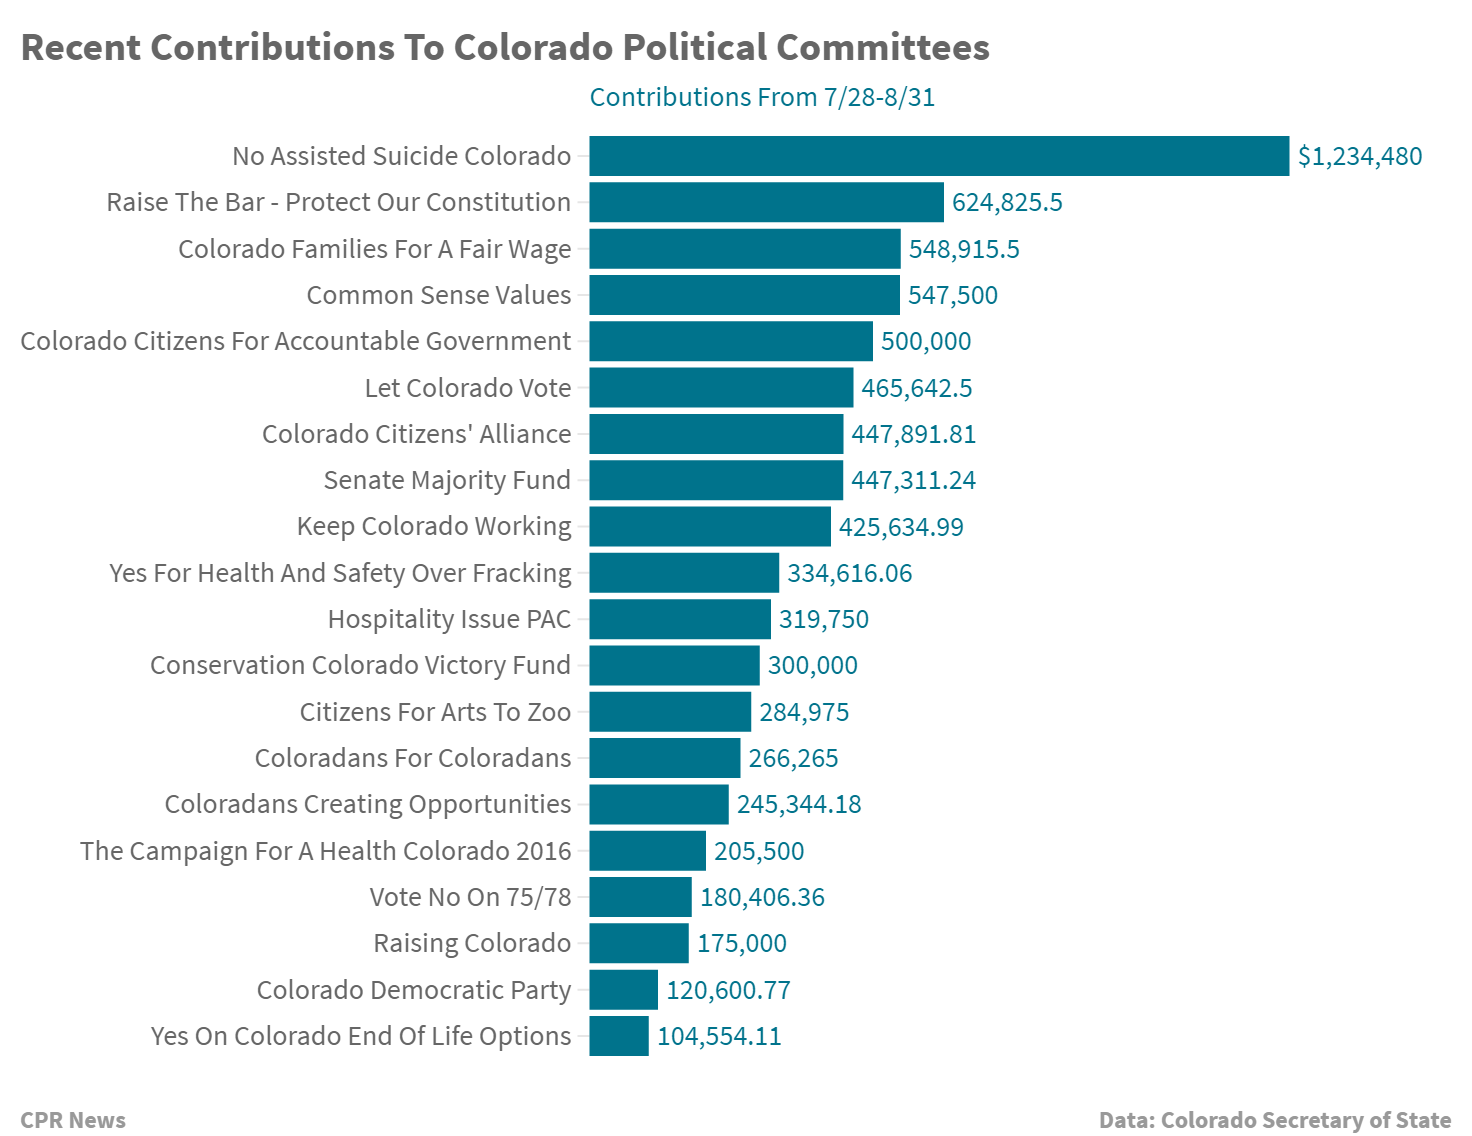 Chart: Colorado PC contributions August 2016